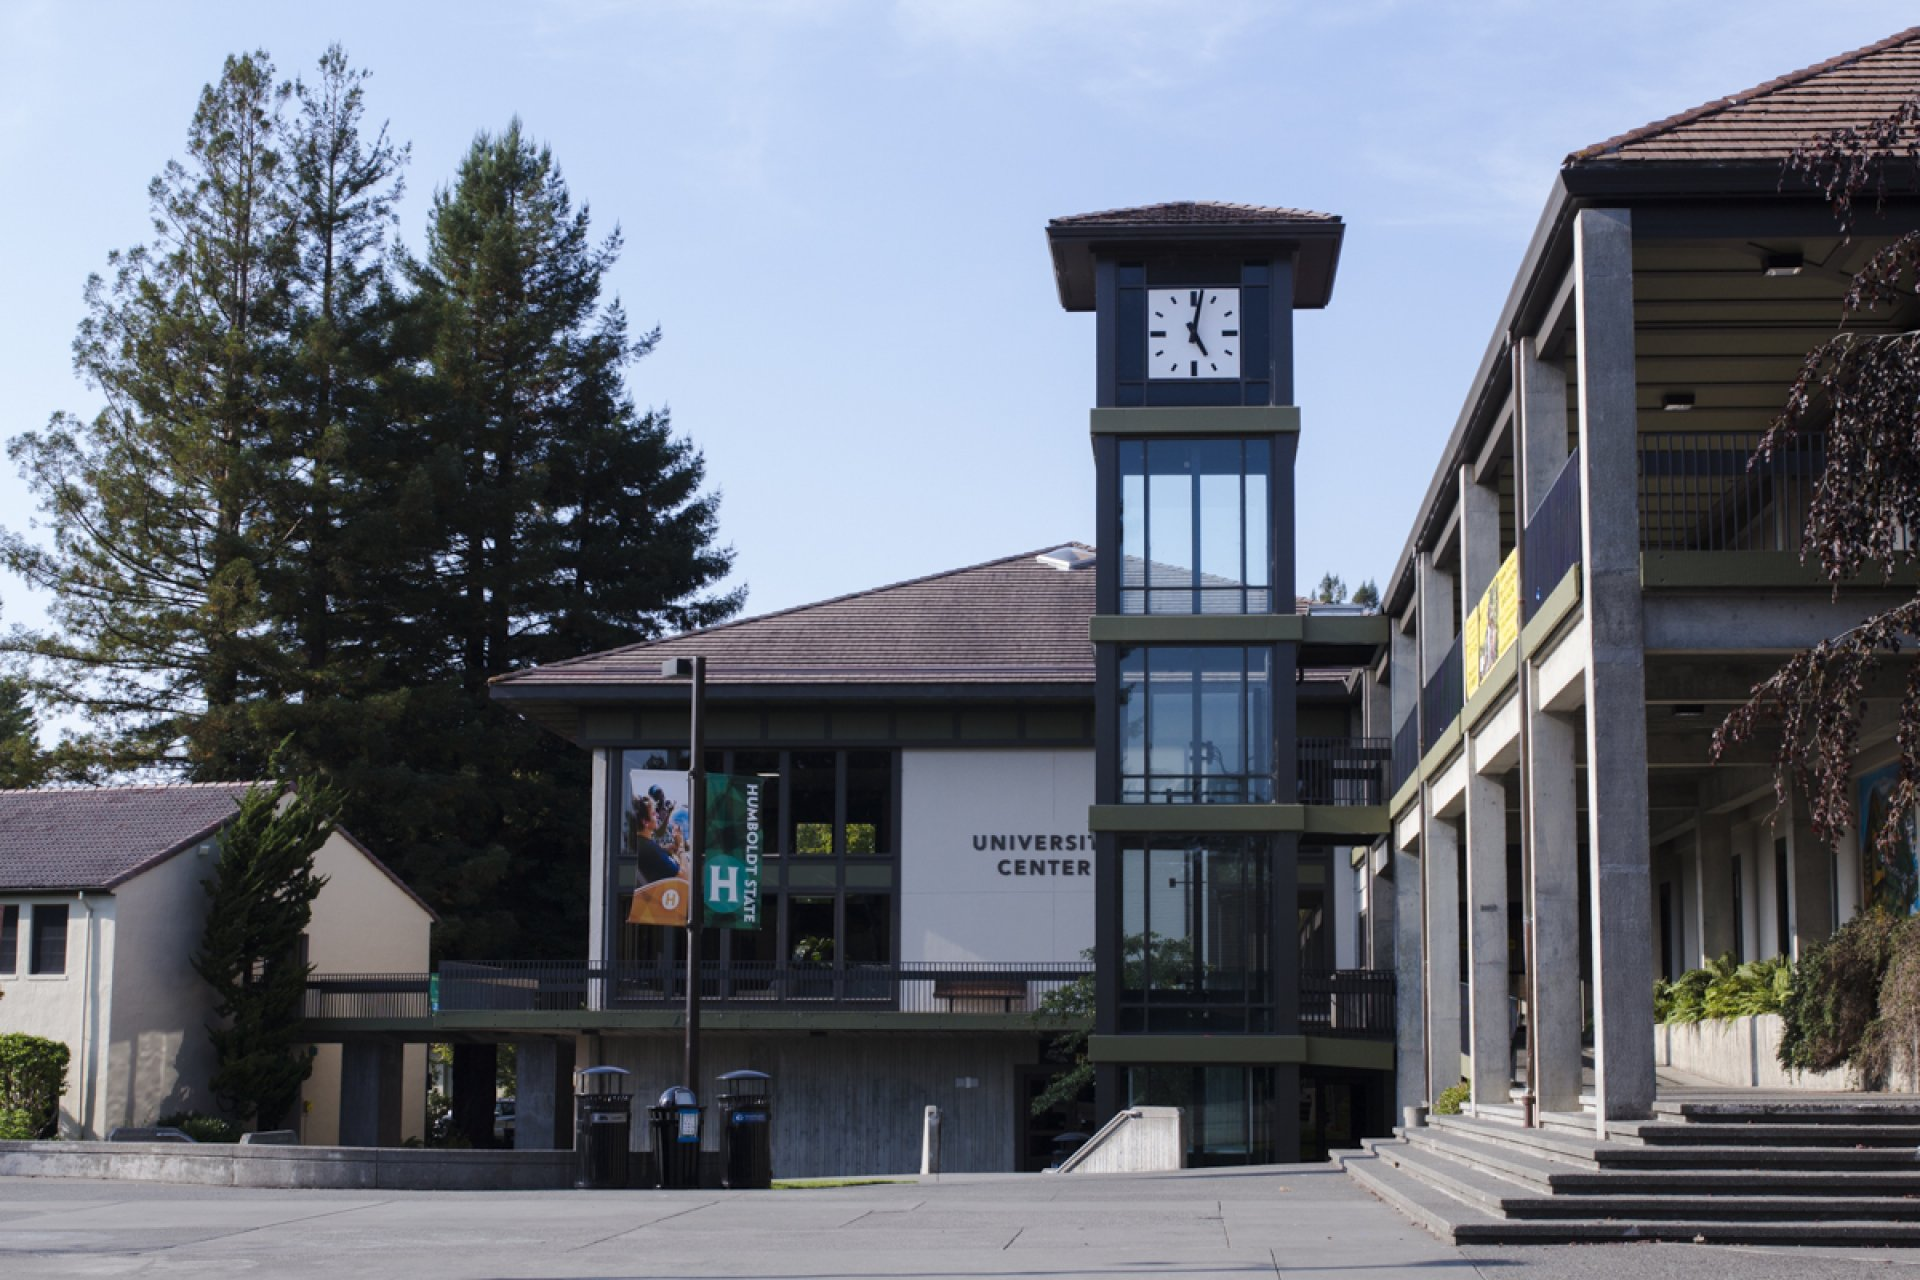 The University Center at Humboldt State University. | File photo by Lauren Shea